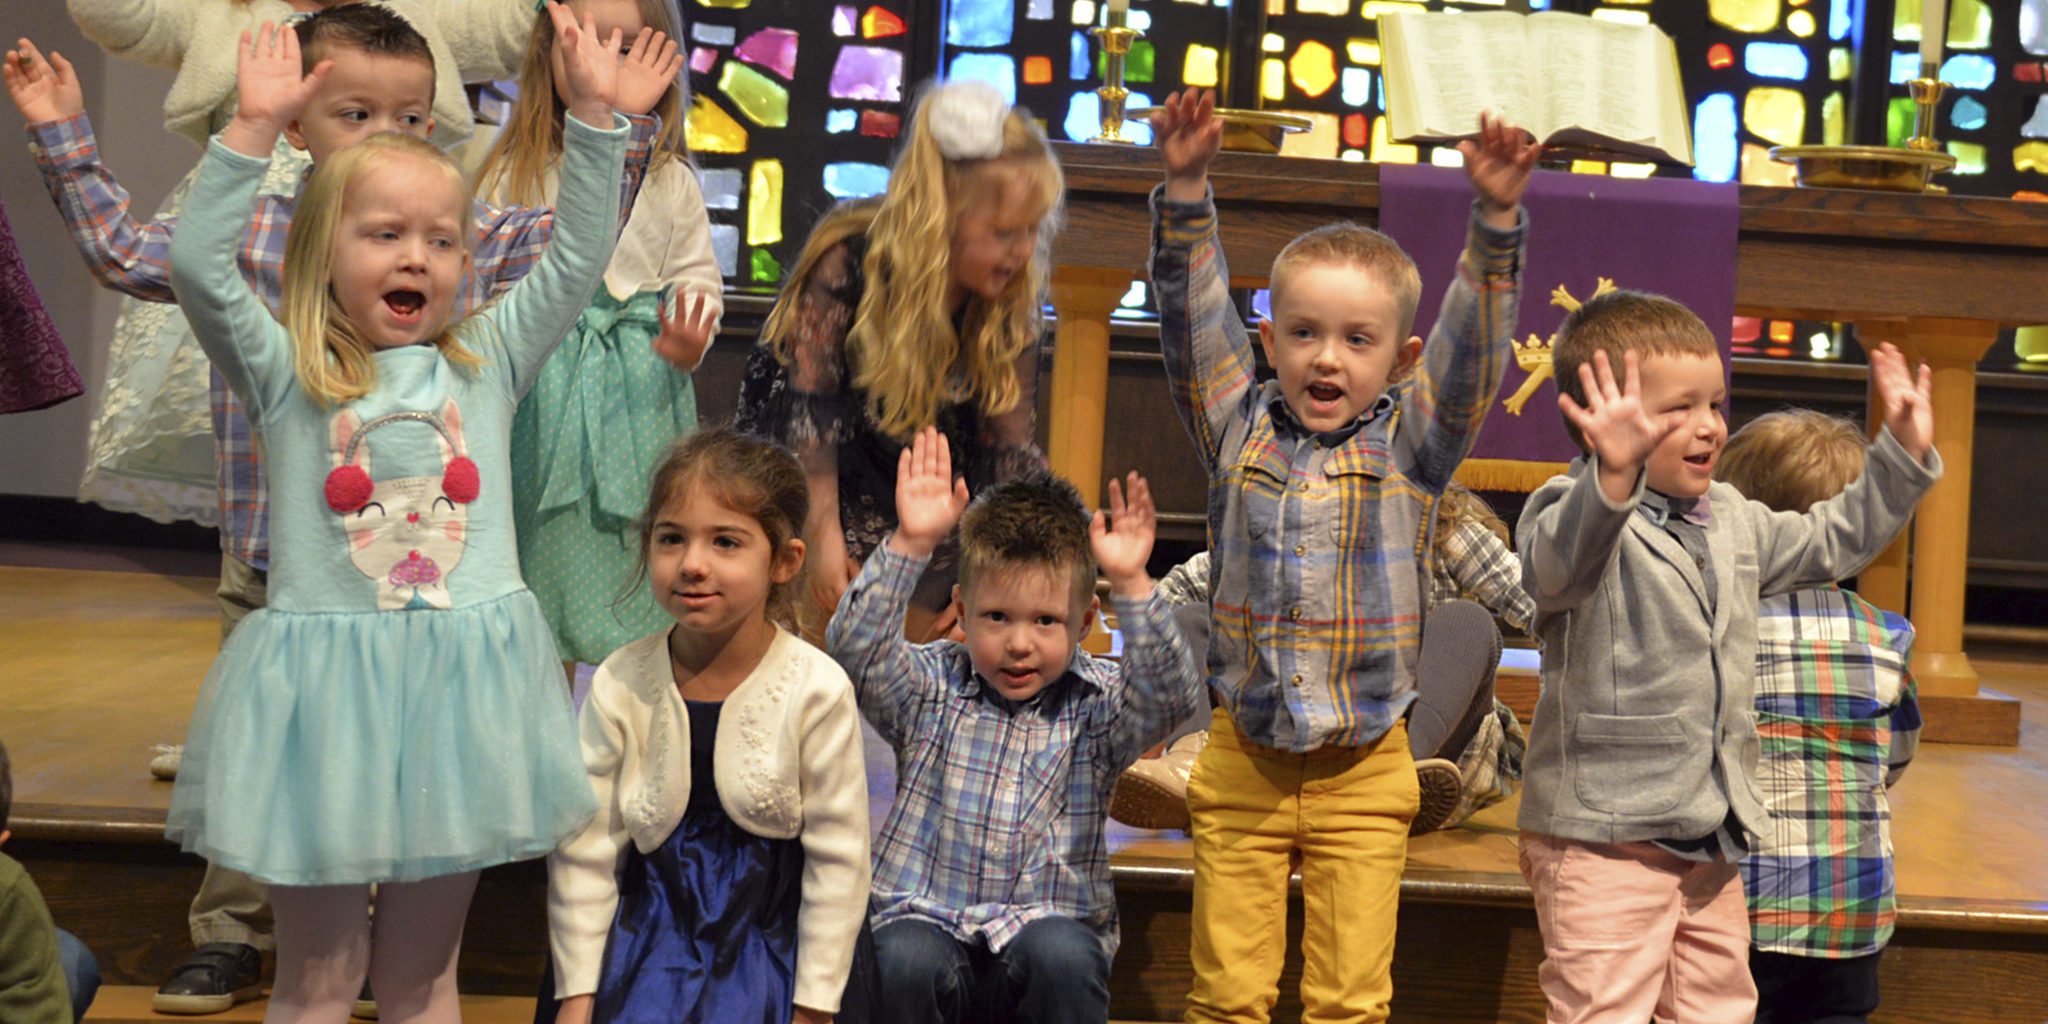 First Presby - Hands Raised Singing